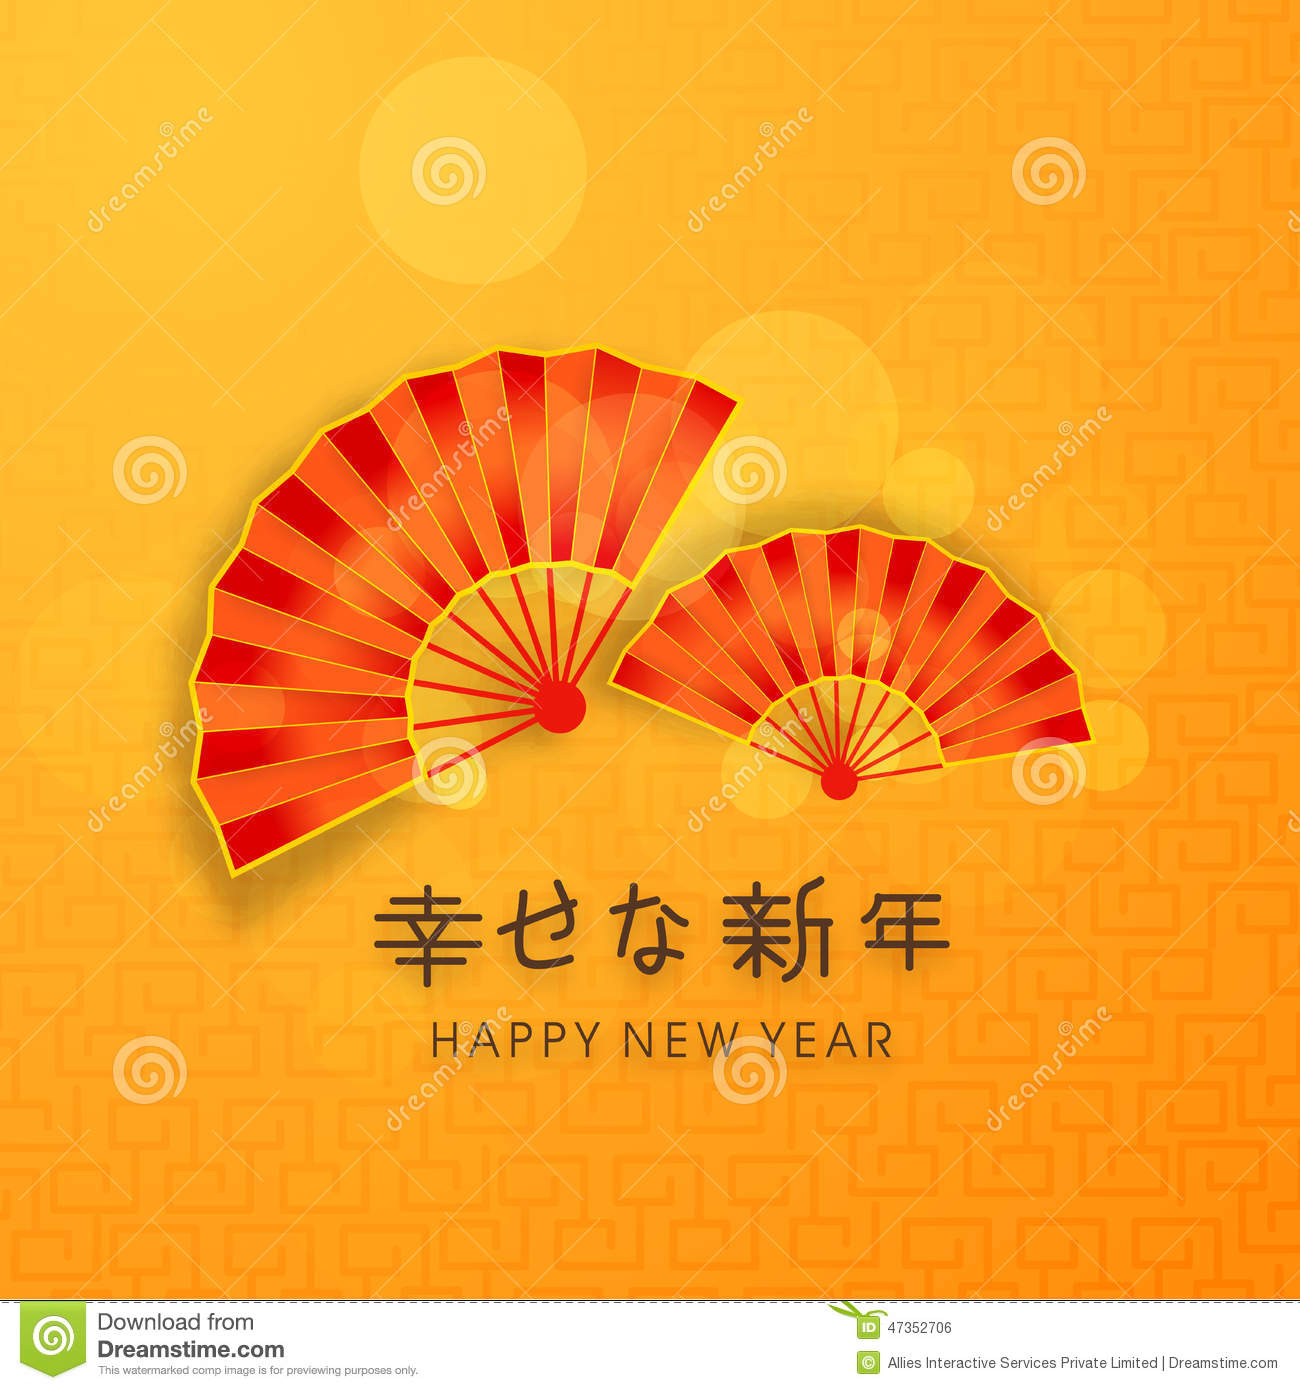 Greeting card or poster for happy new year celebrations stock download greeting card or poster for happy new year celebrations stock illustration illustration of m4hsunfo